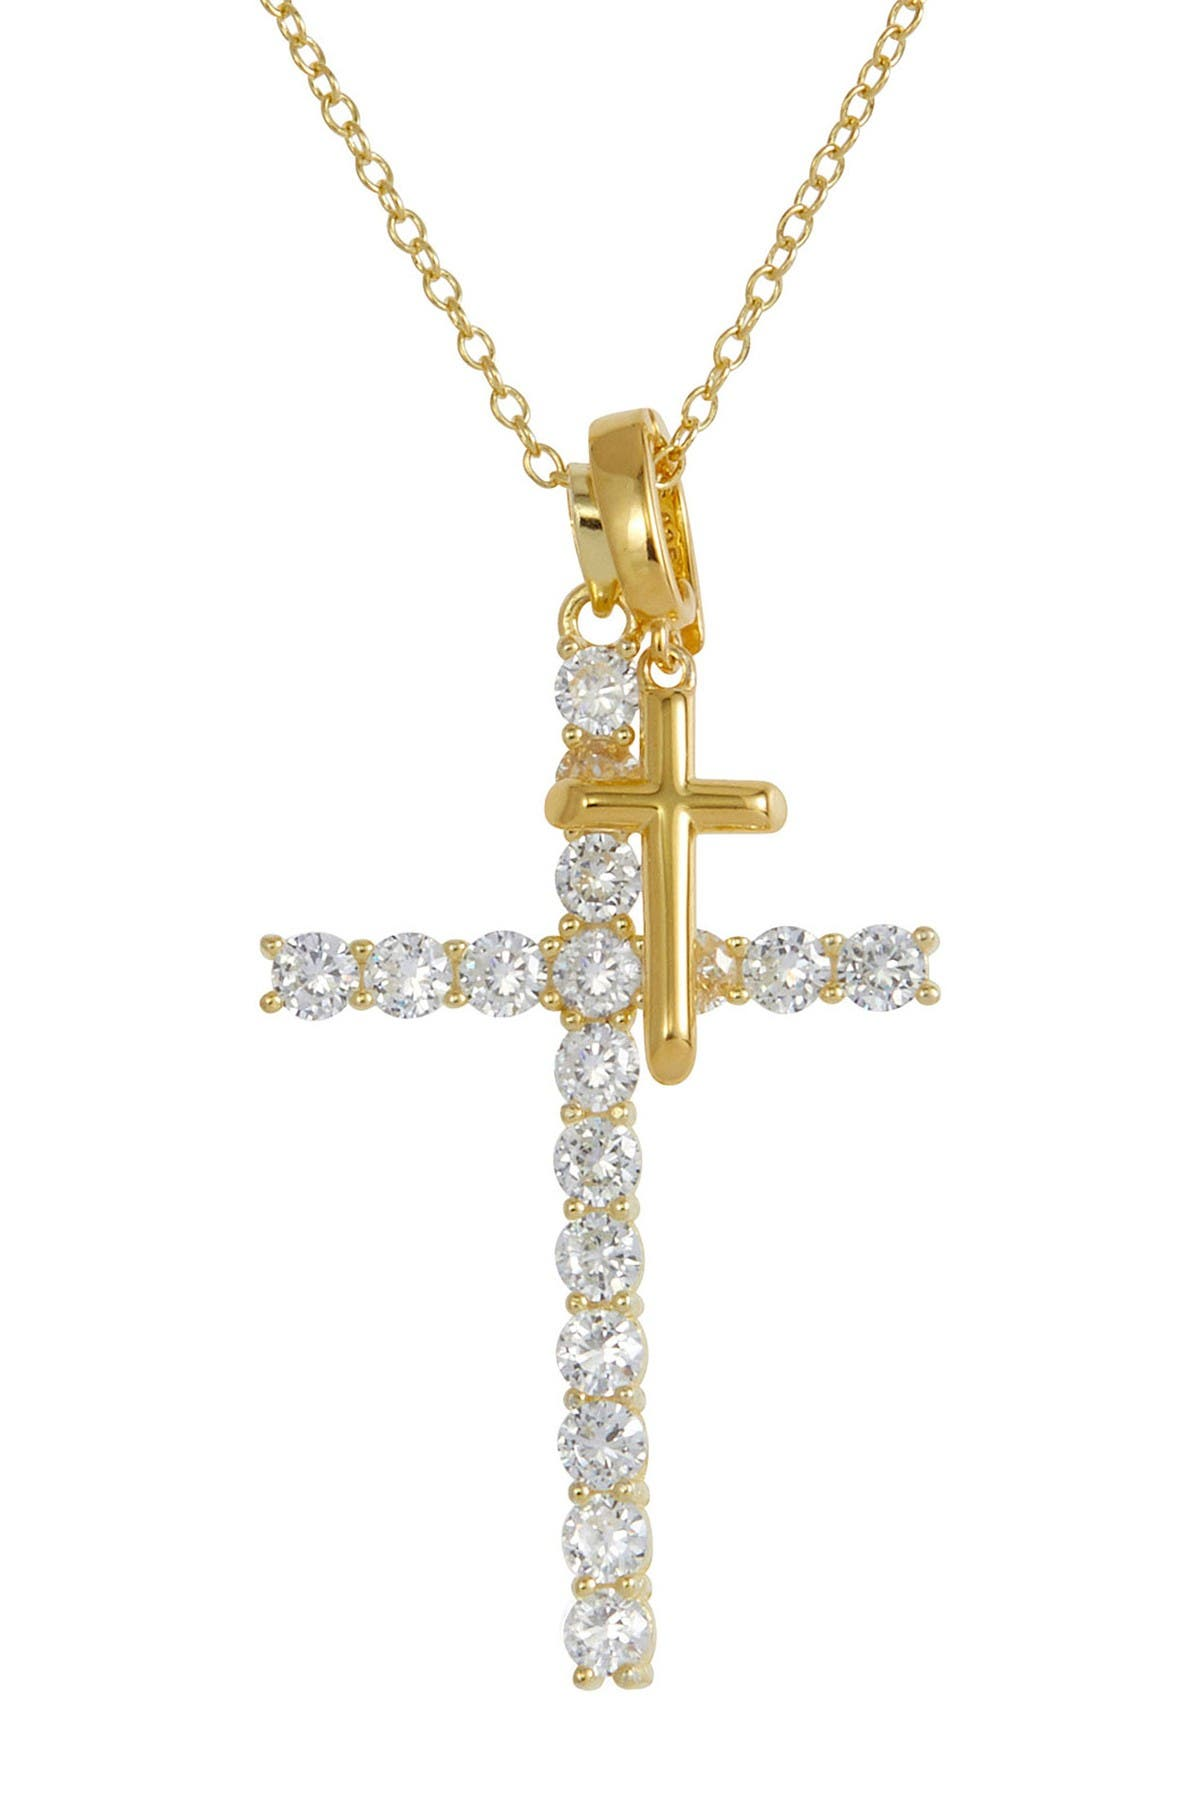 Image of Savvy Cie 18K Gold Vermeil Double Cross CZ Pendant Necklace